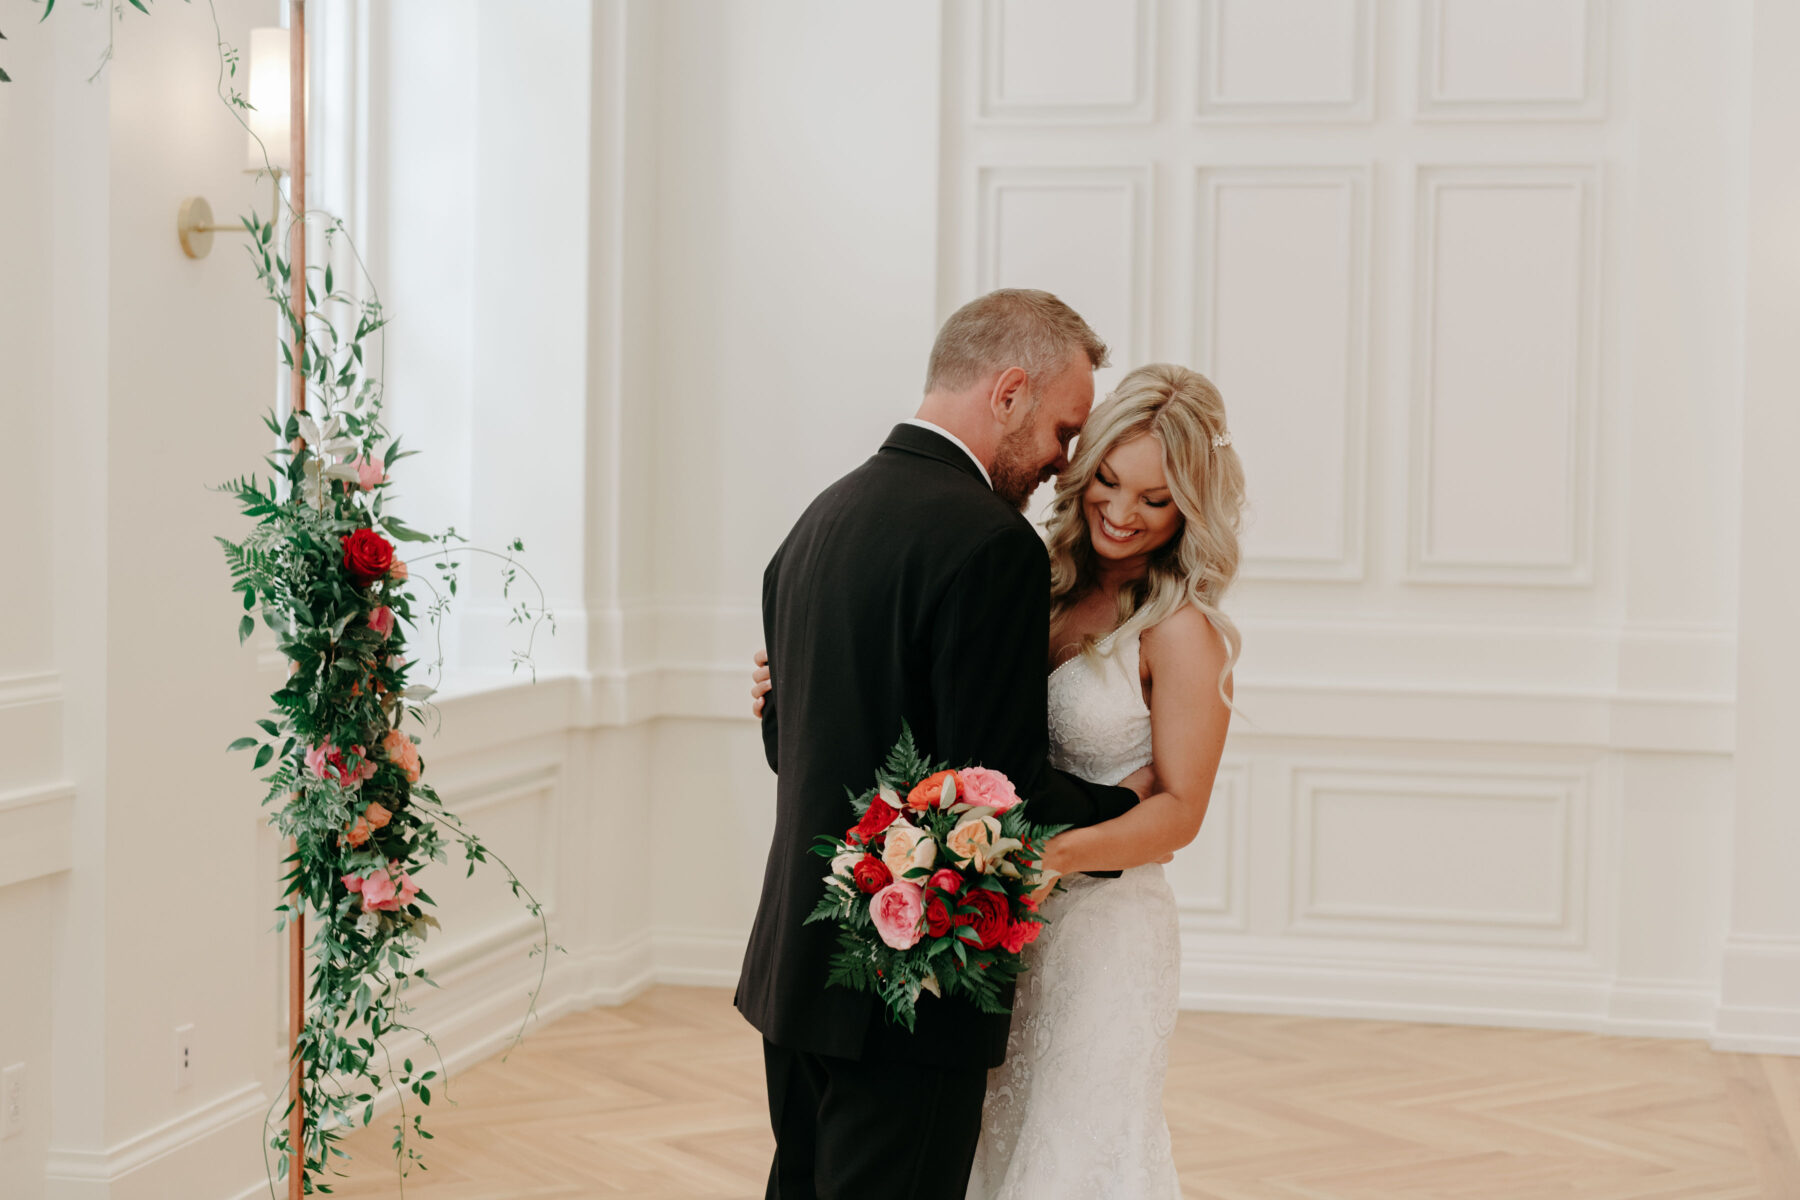 Summer Tennessee Wedding at Noelle from Jayde J. Smith Events featured on Nashville Bride Guide